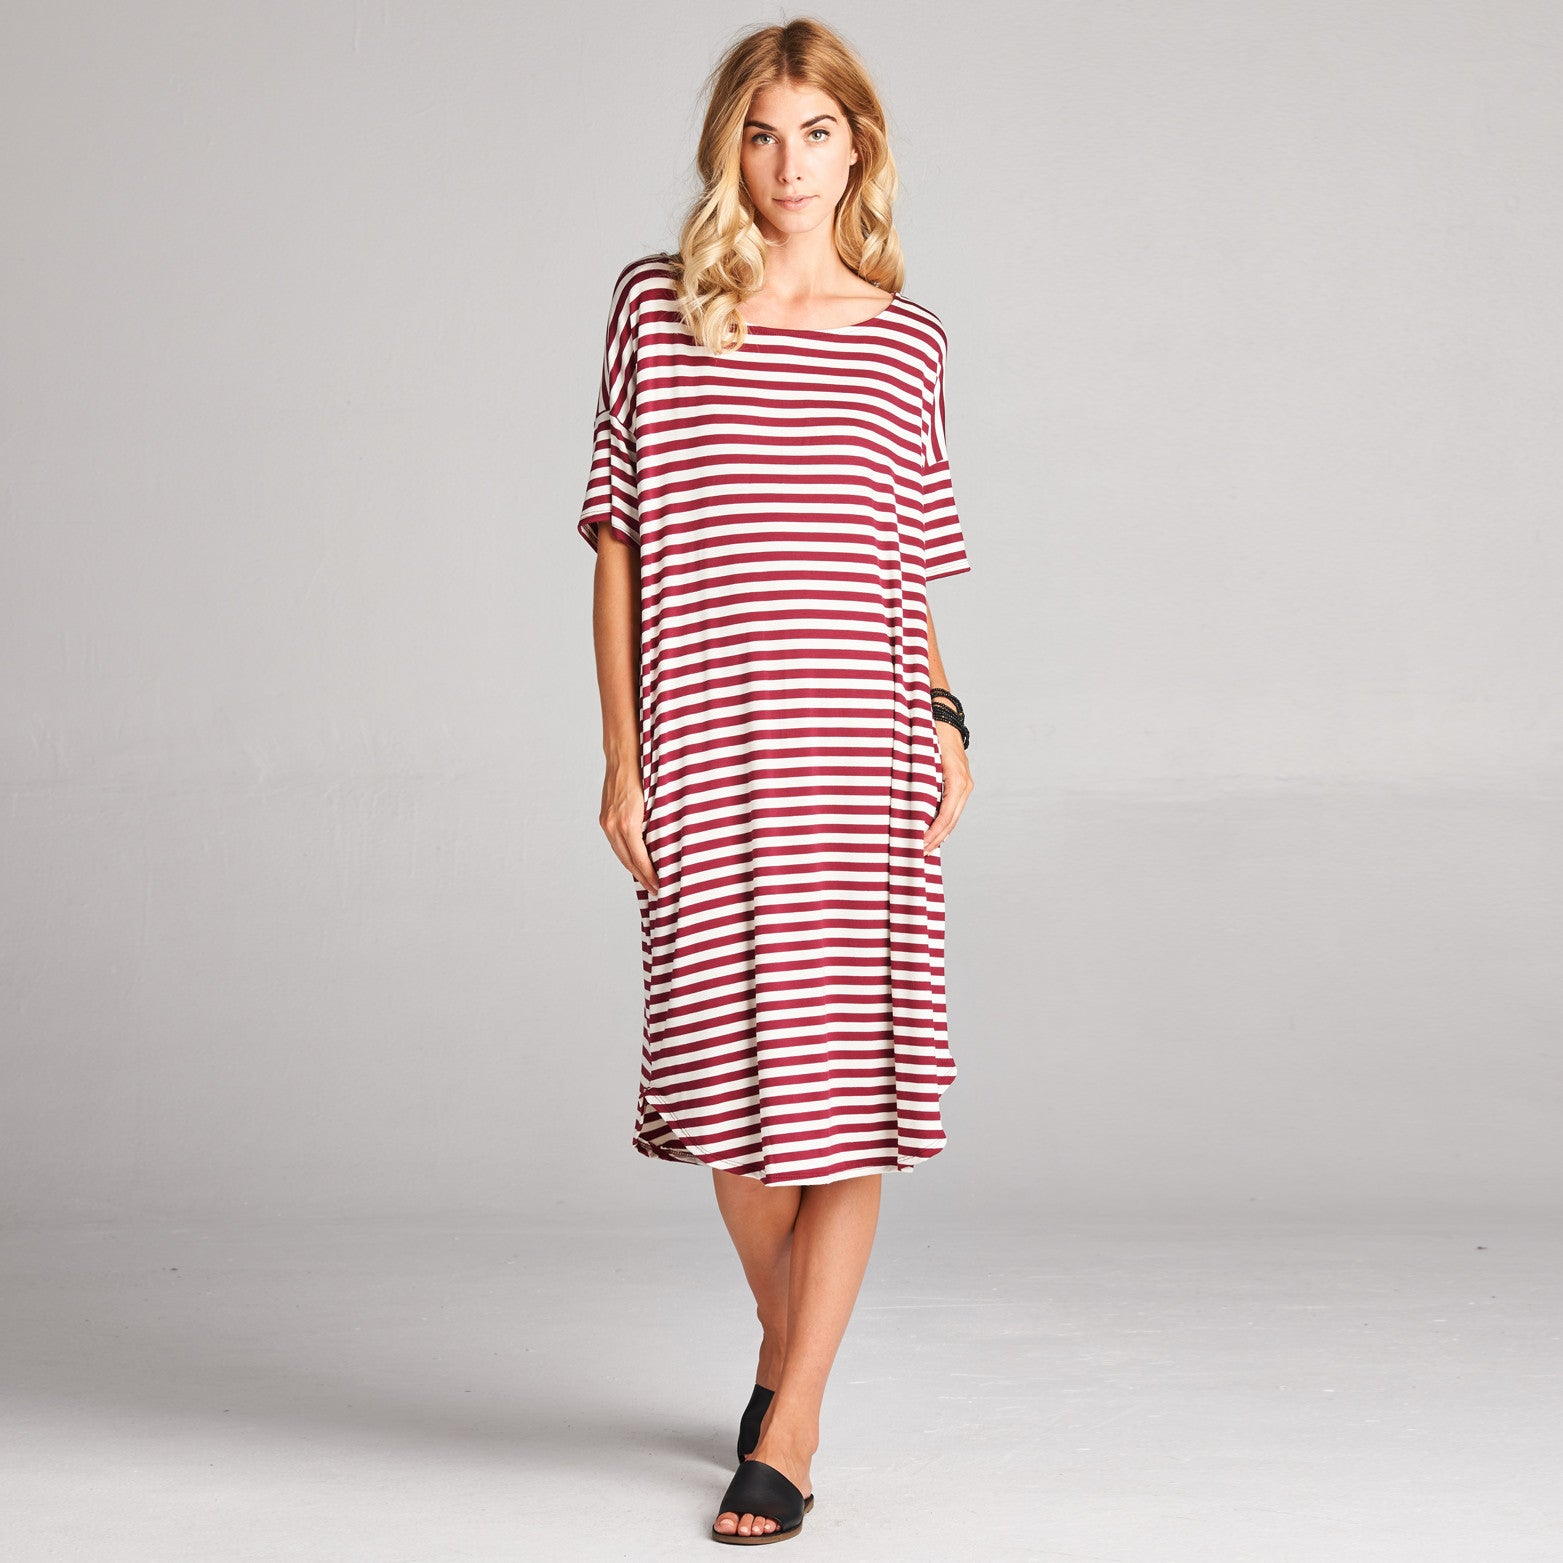 Relaxed Fit Striped Dress with Pockets